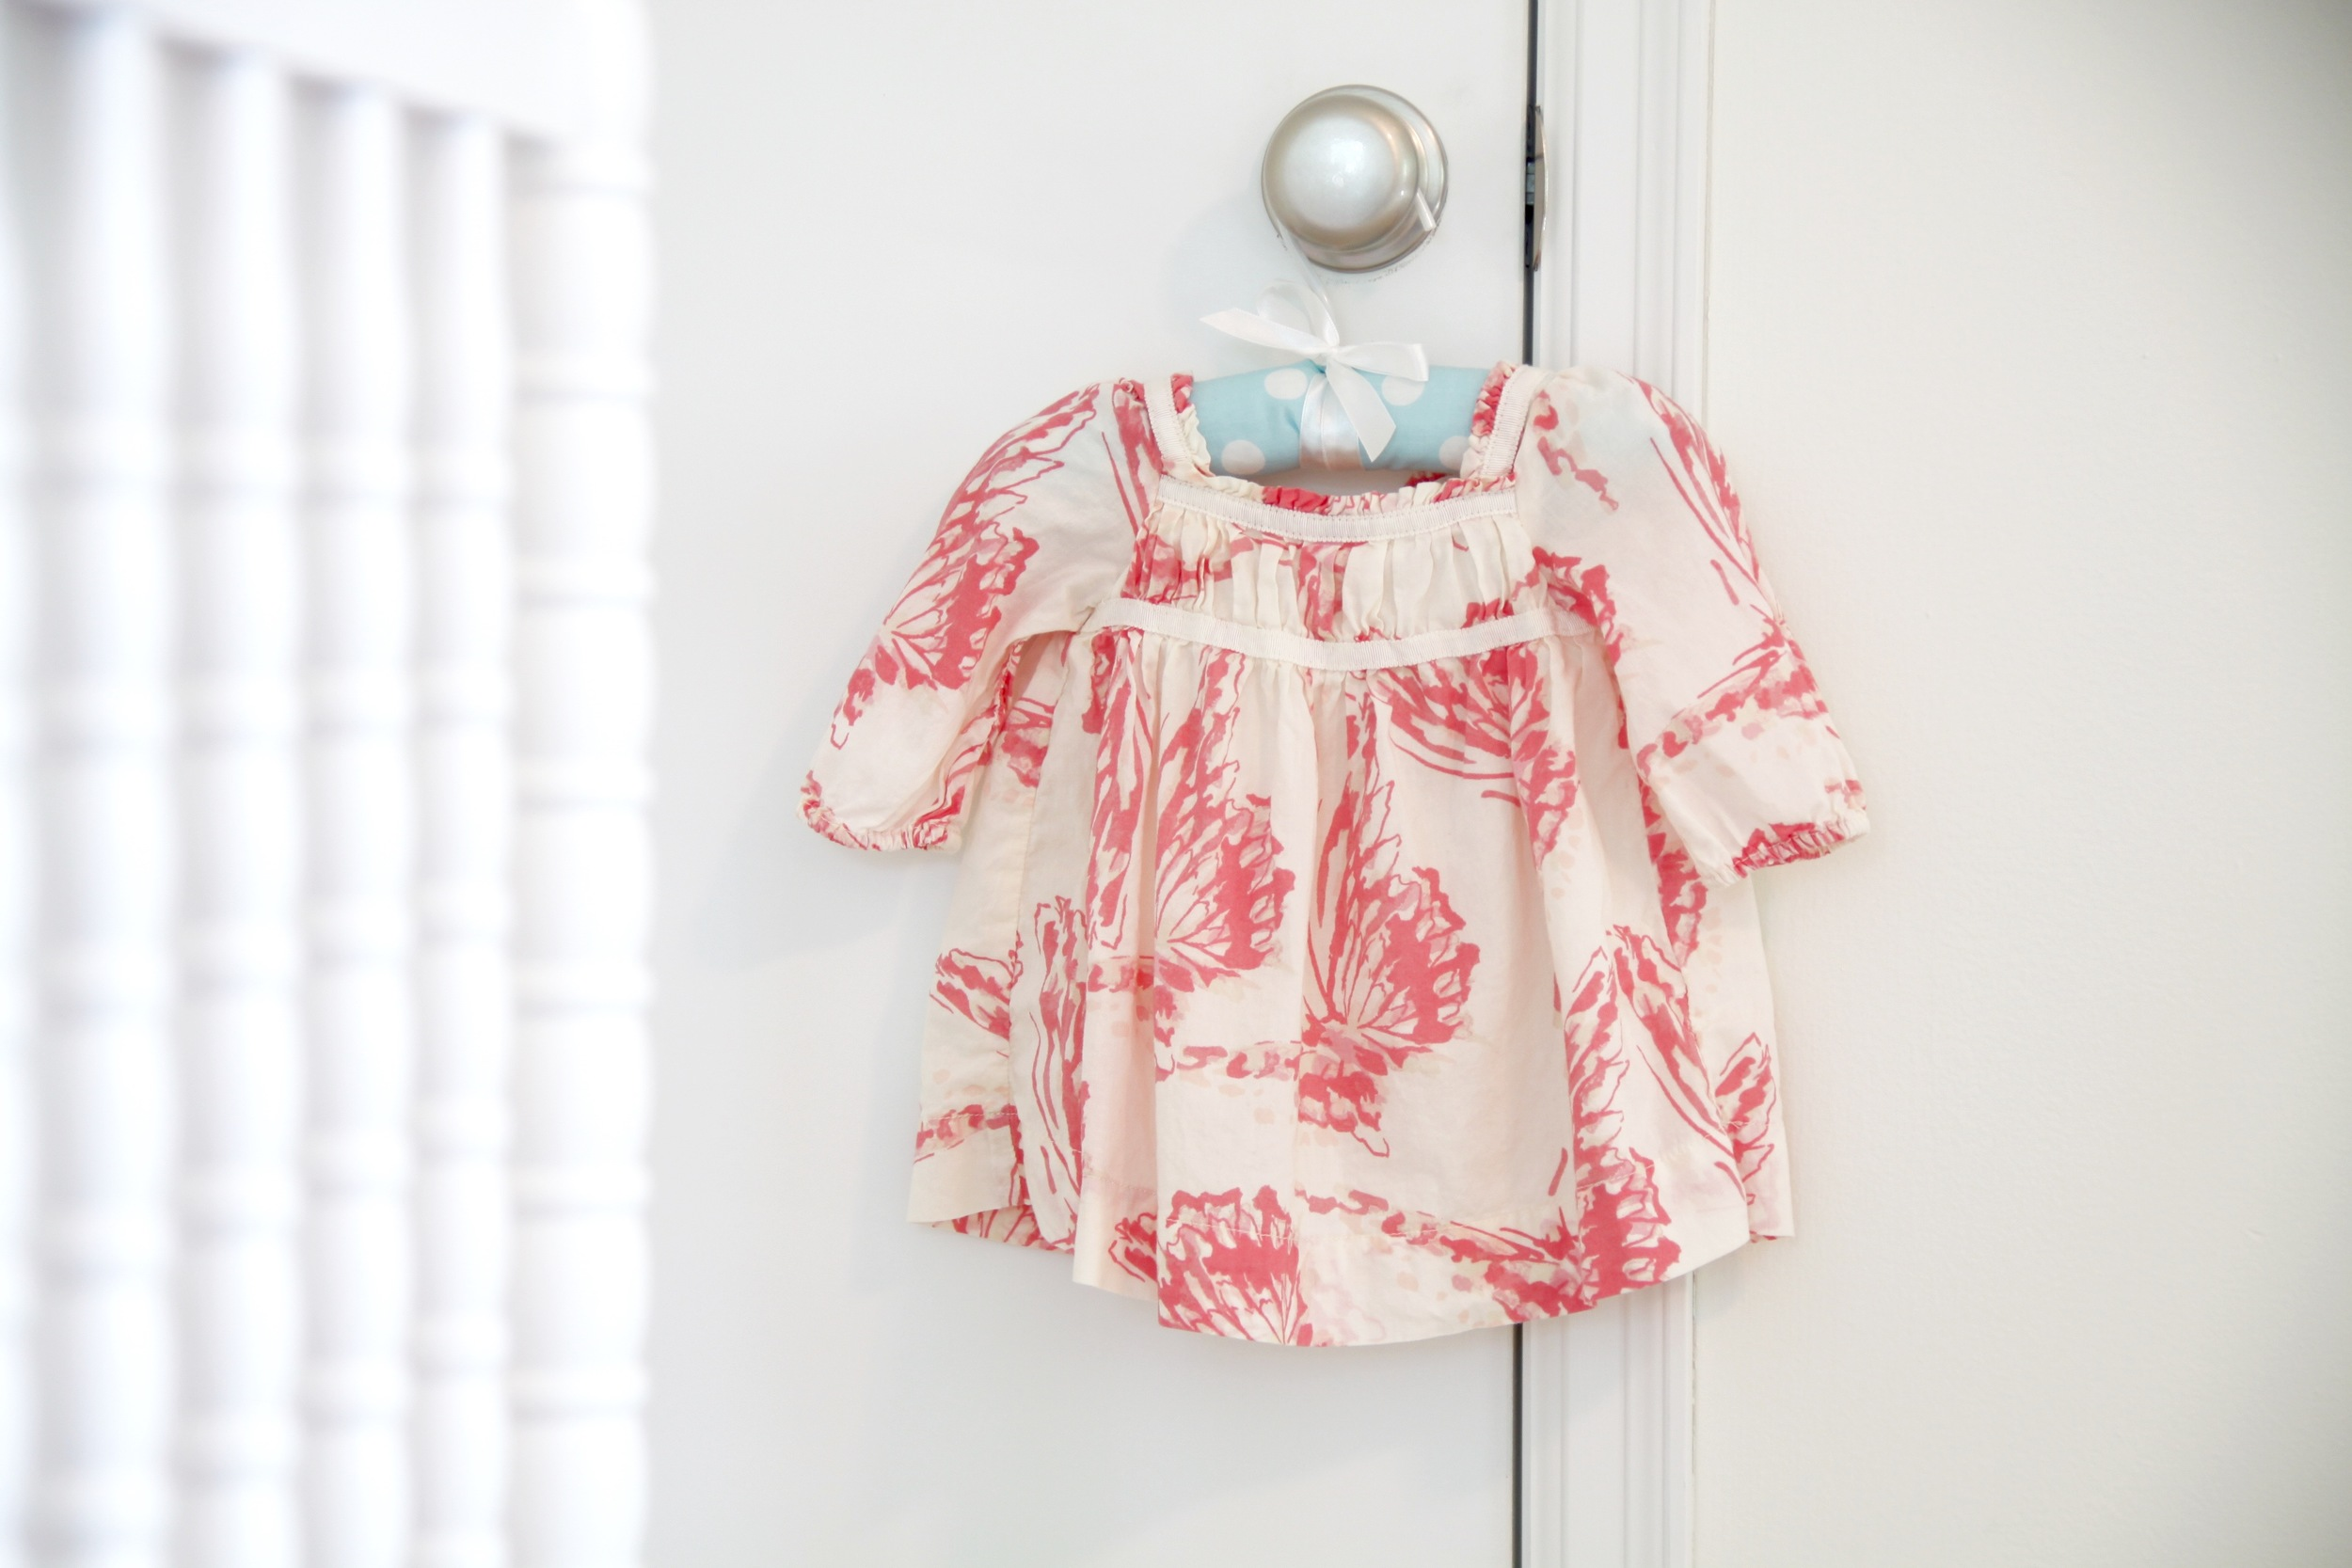 Use Kids Clothes to Decorate a Room